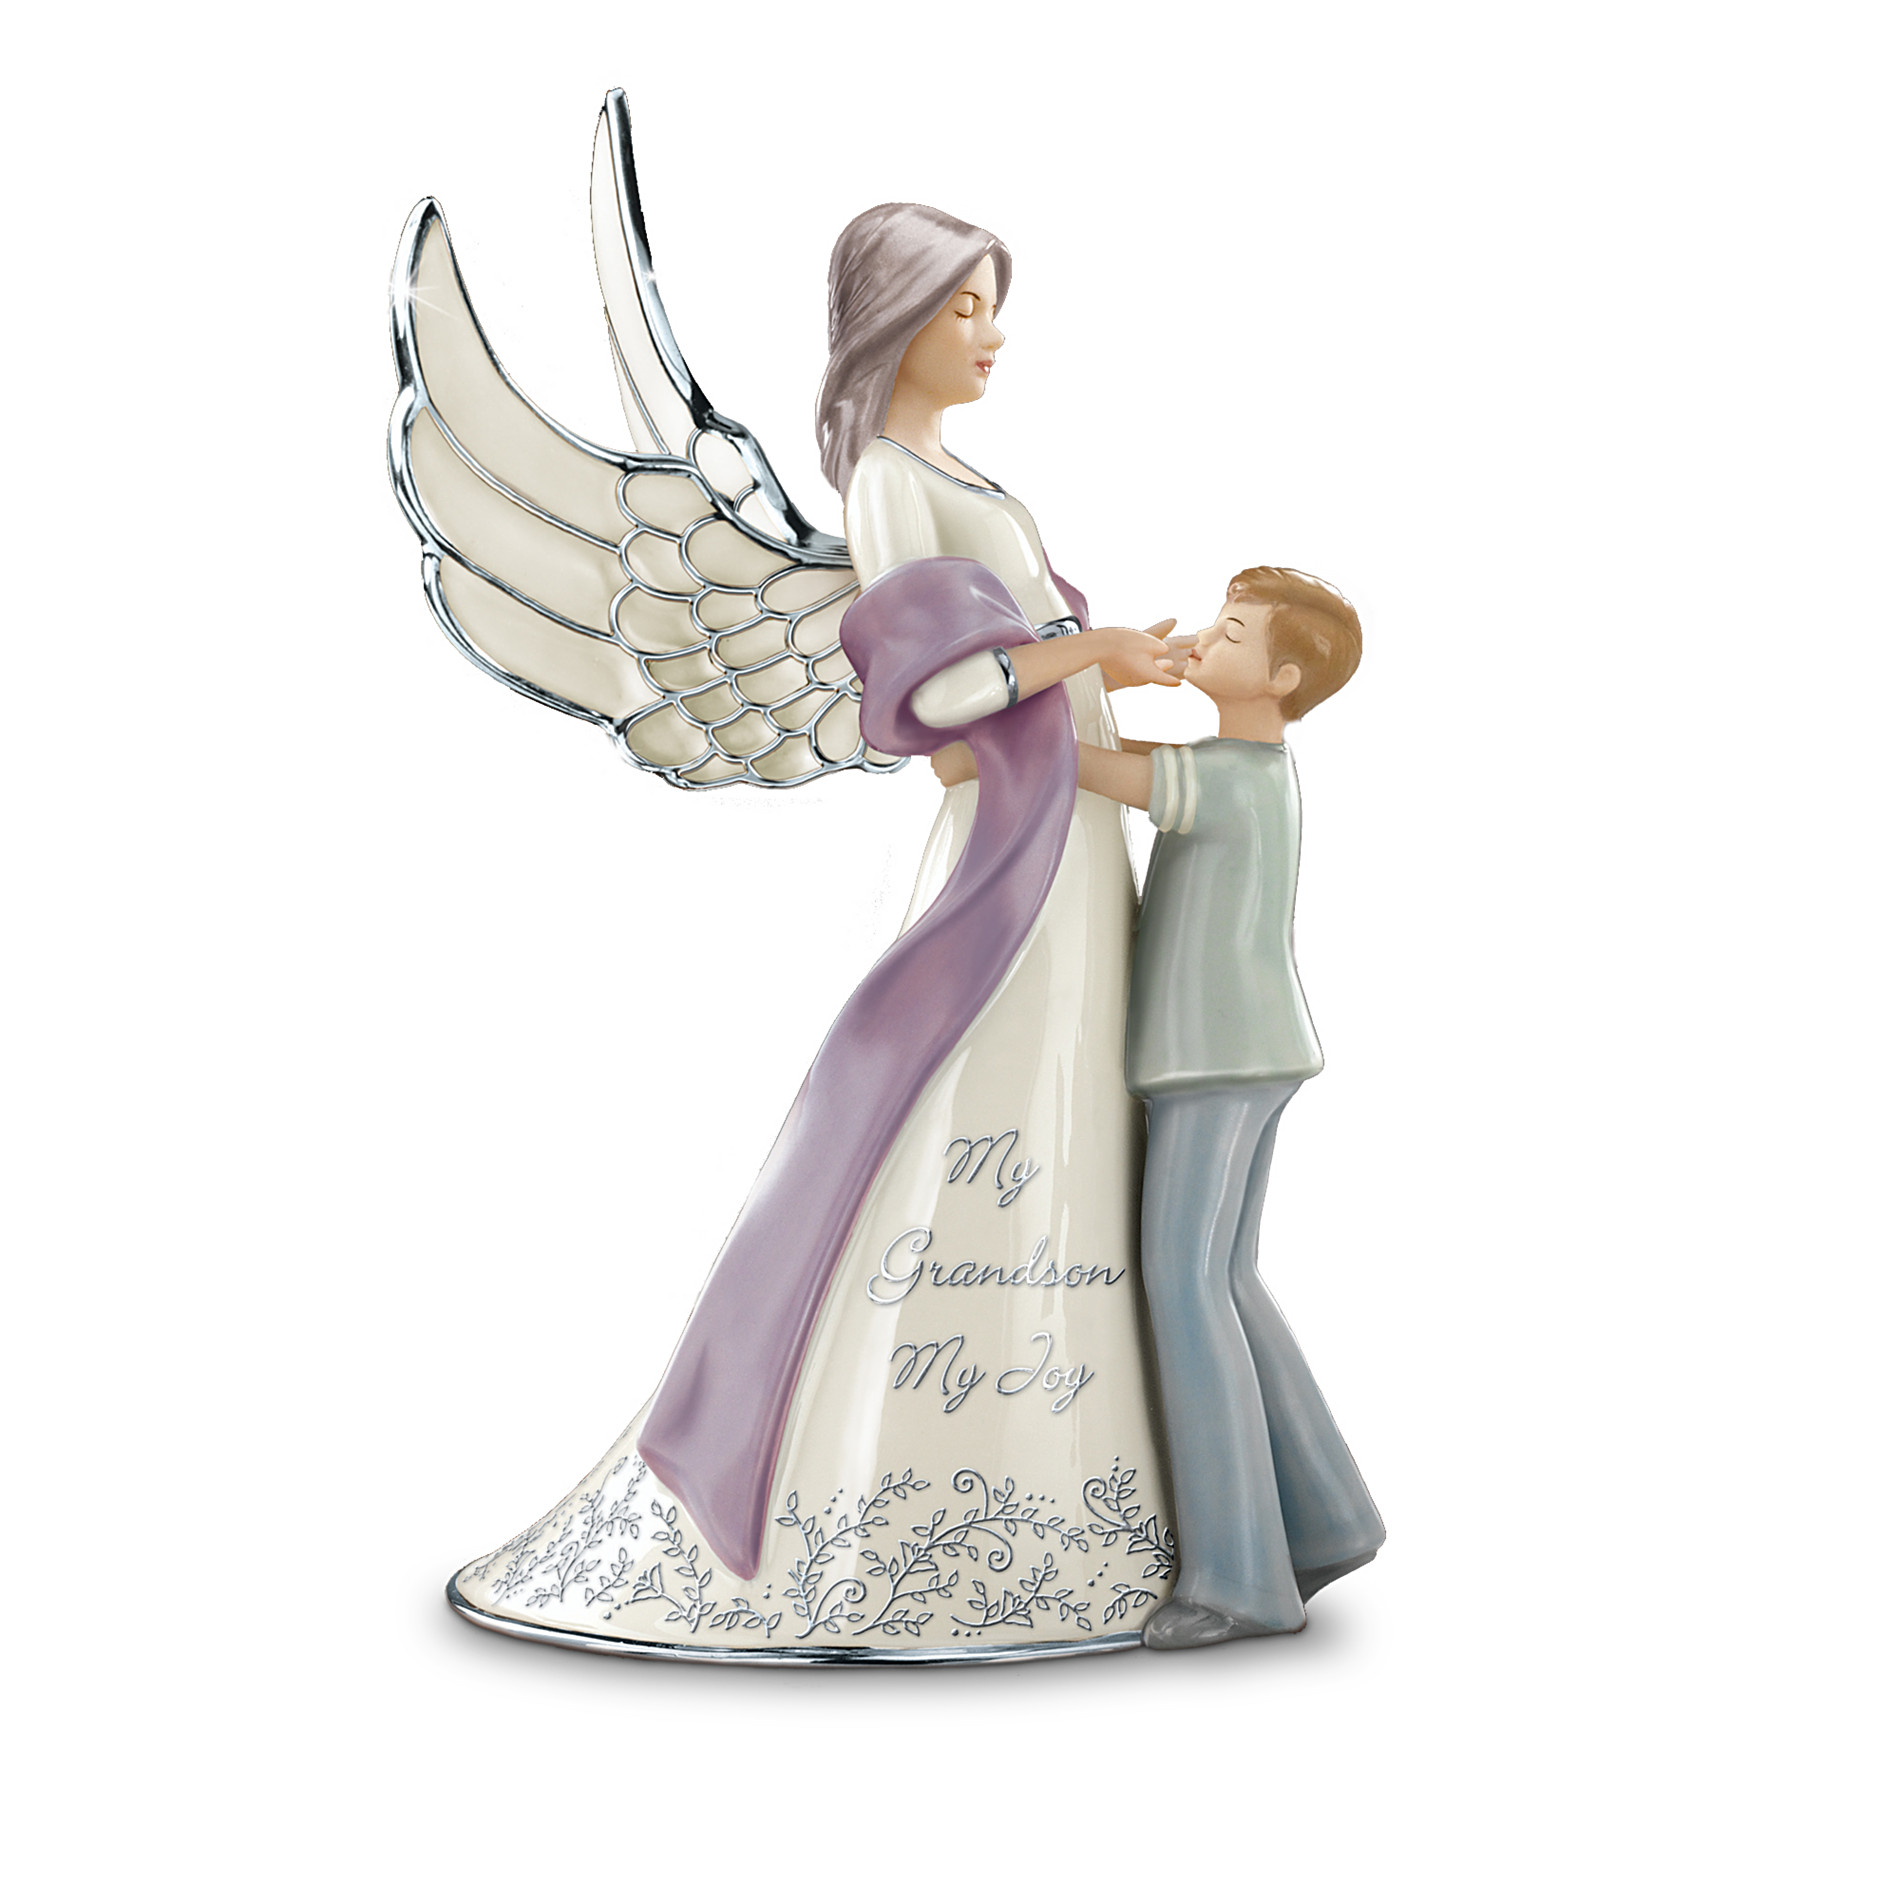 The Bradford Exchange My Grandson, My Joy Porcelain Guardian Angel Figurine Gift at Sears.com